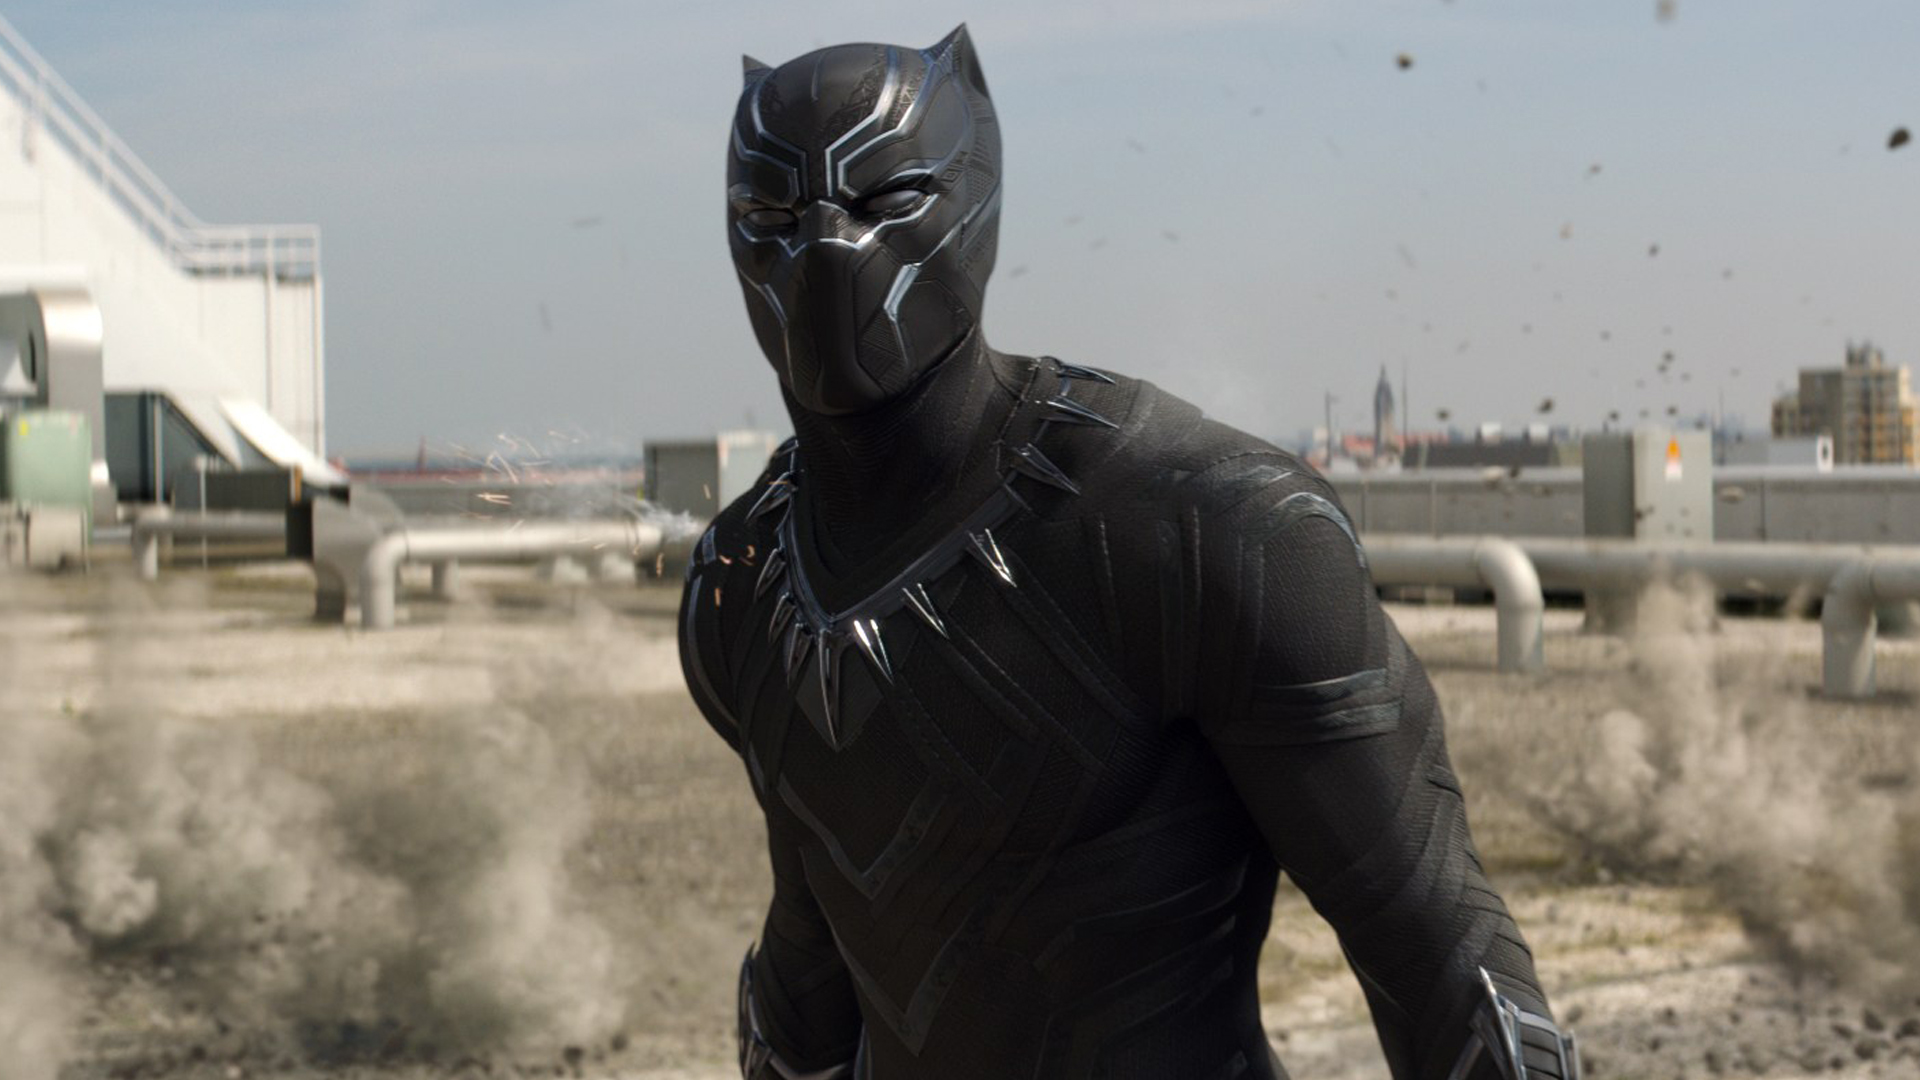 """panther personals On one hand, you get it: the words """"black panther"""" represents black empowerment, unapologetic swag and daring defiance and is the name of a revolutionary black organization from the 1960s that scared america."""